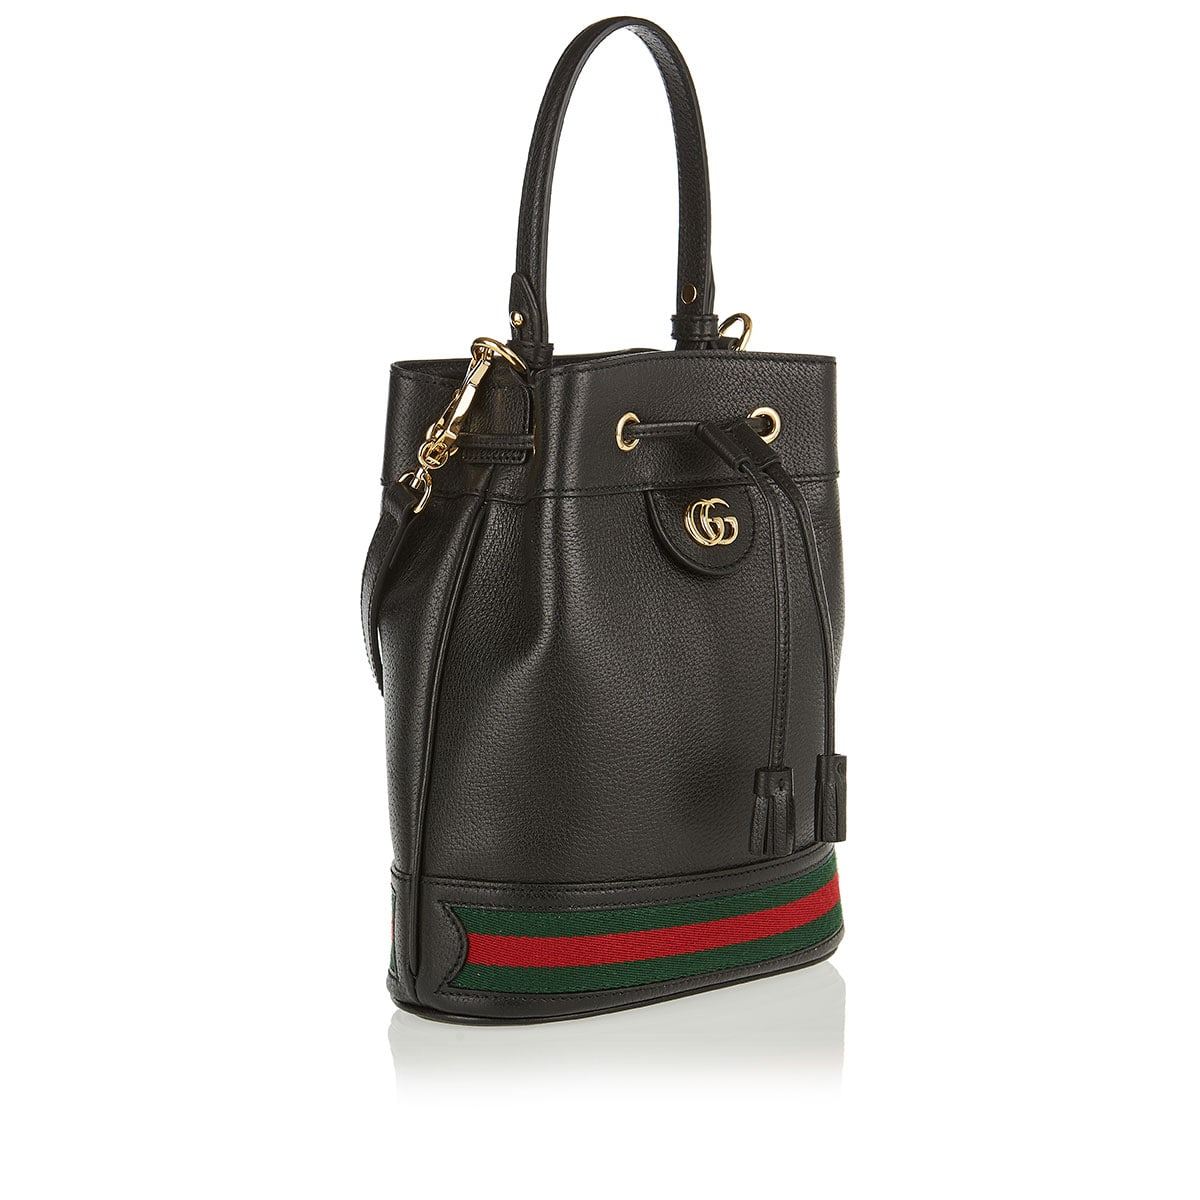 Ophidia small leather bucket bag